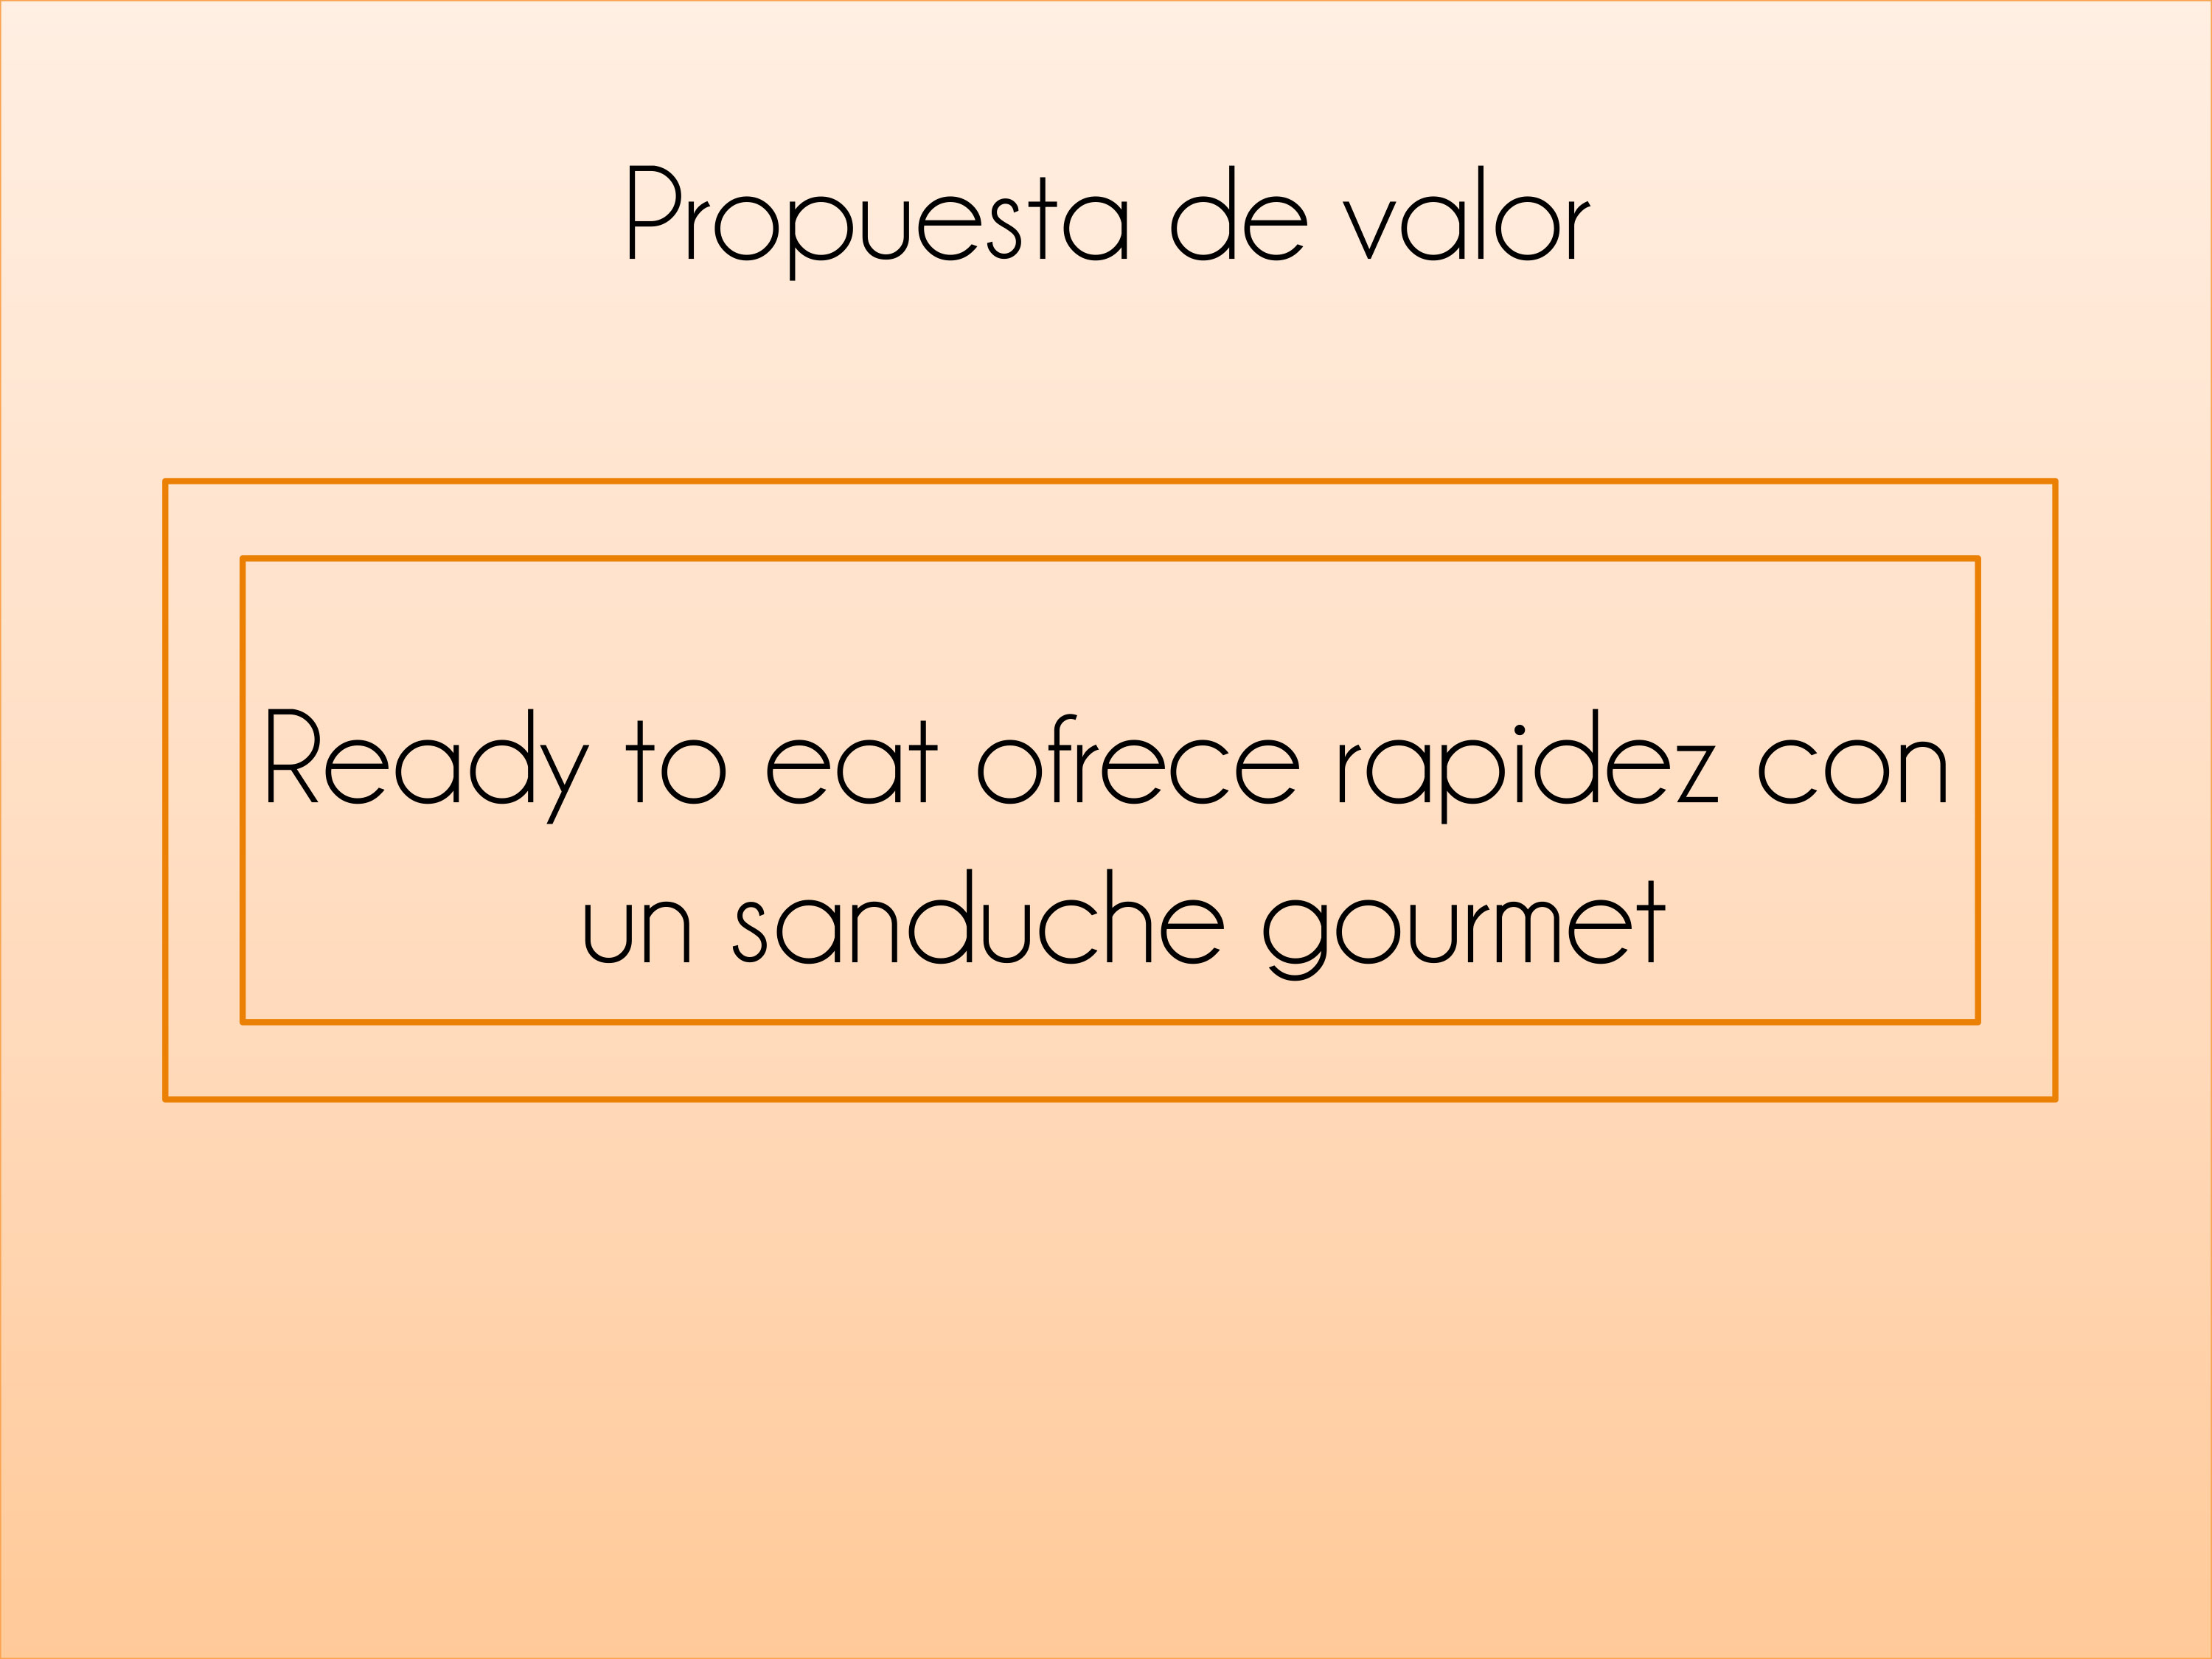 Ready to eat - Propuesta de valor